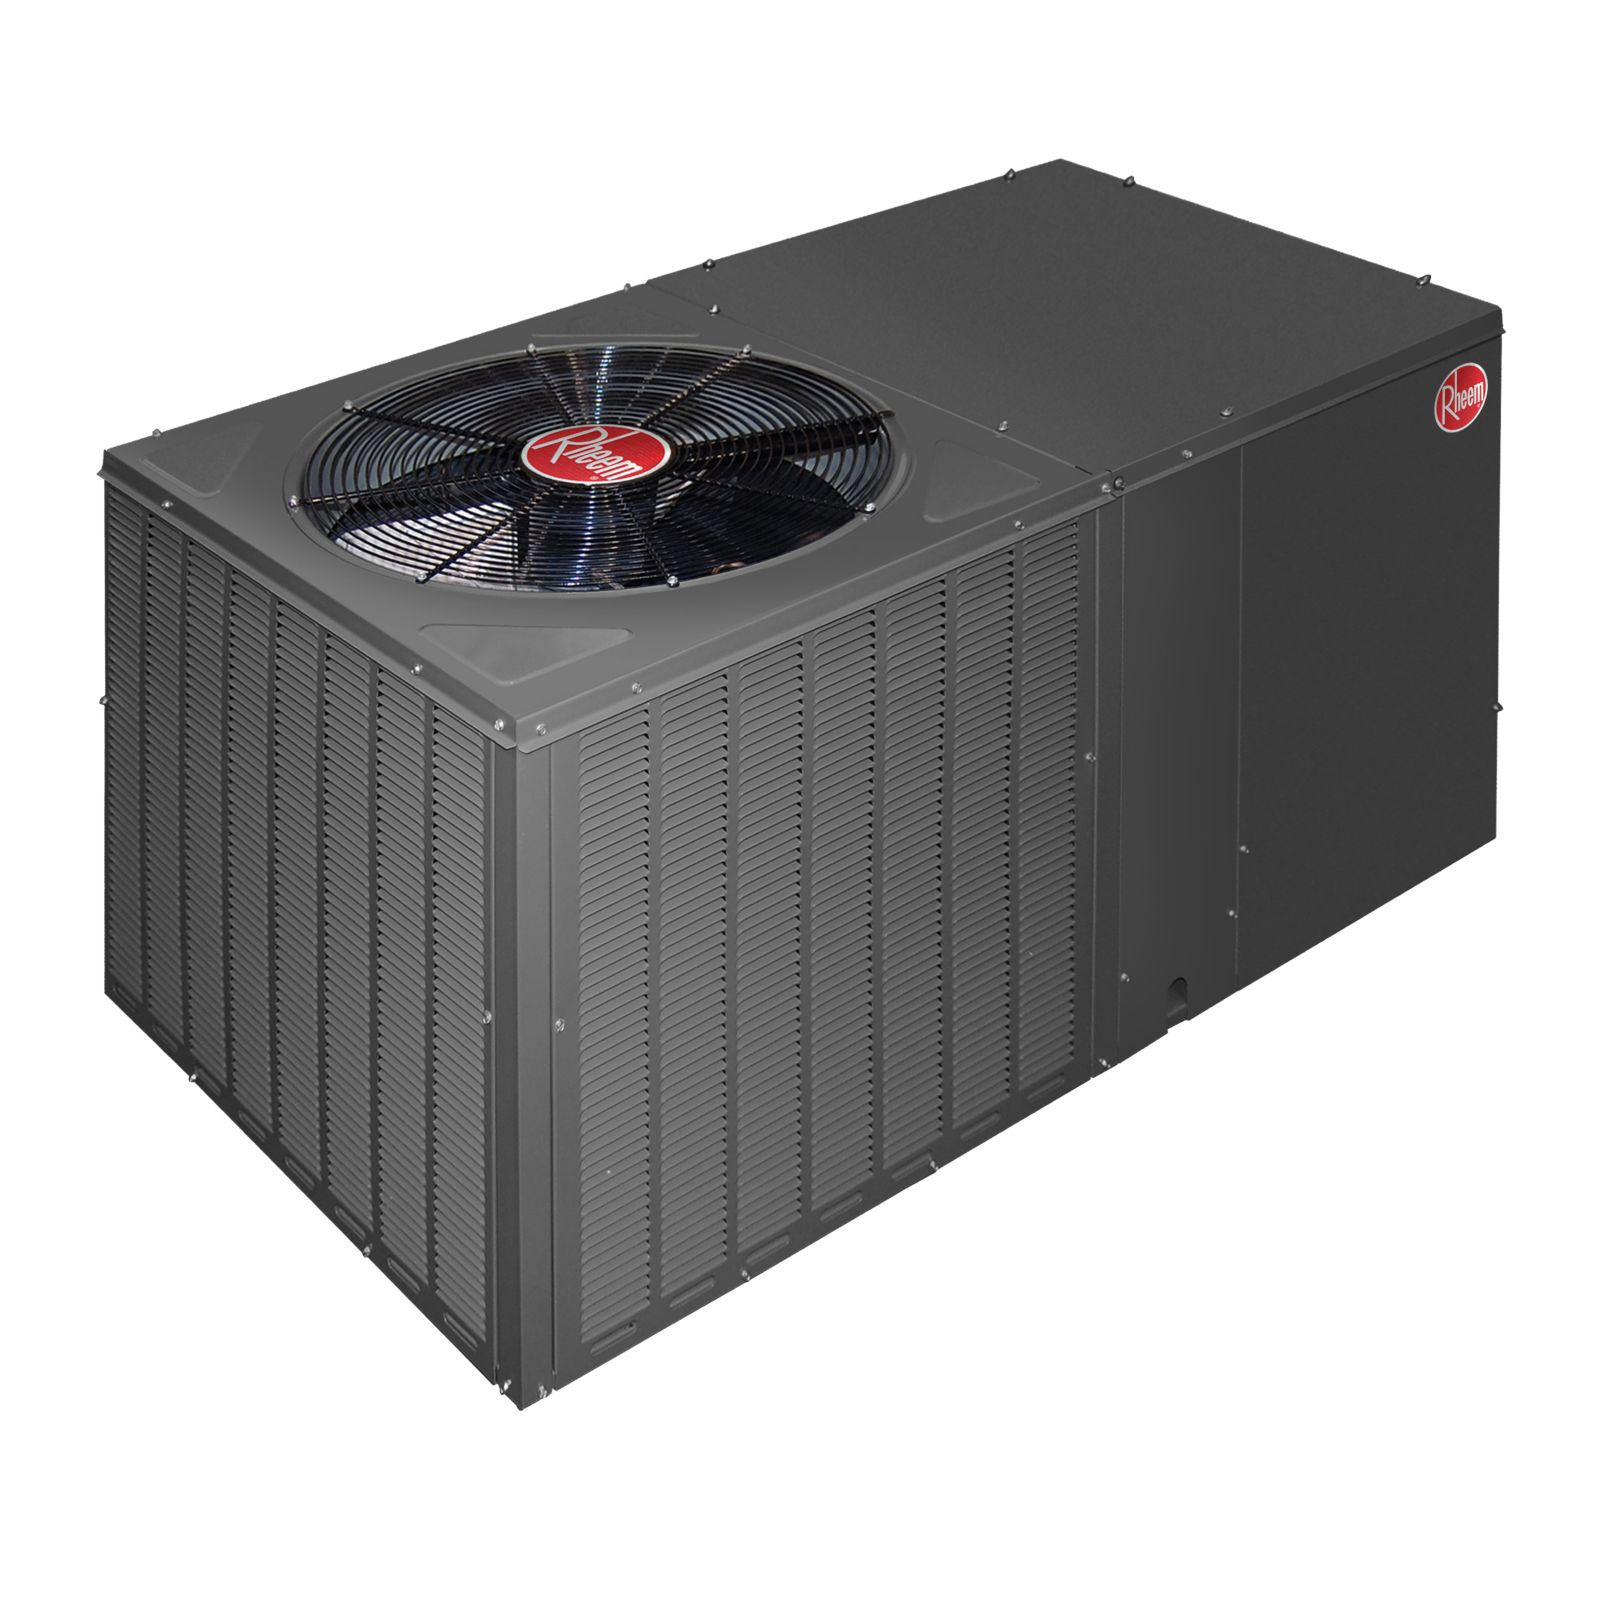 Rheem RQPM-A030JK000AUA - Classic 2 1/2 Ton 14 SEER, R-410A, Packaged Heat Pump With Horizontal Discharge, 208-230V, 1 Phase